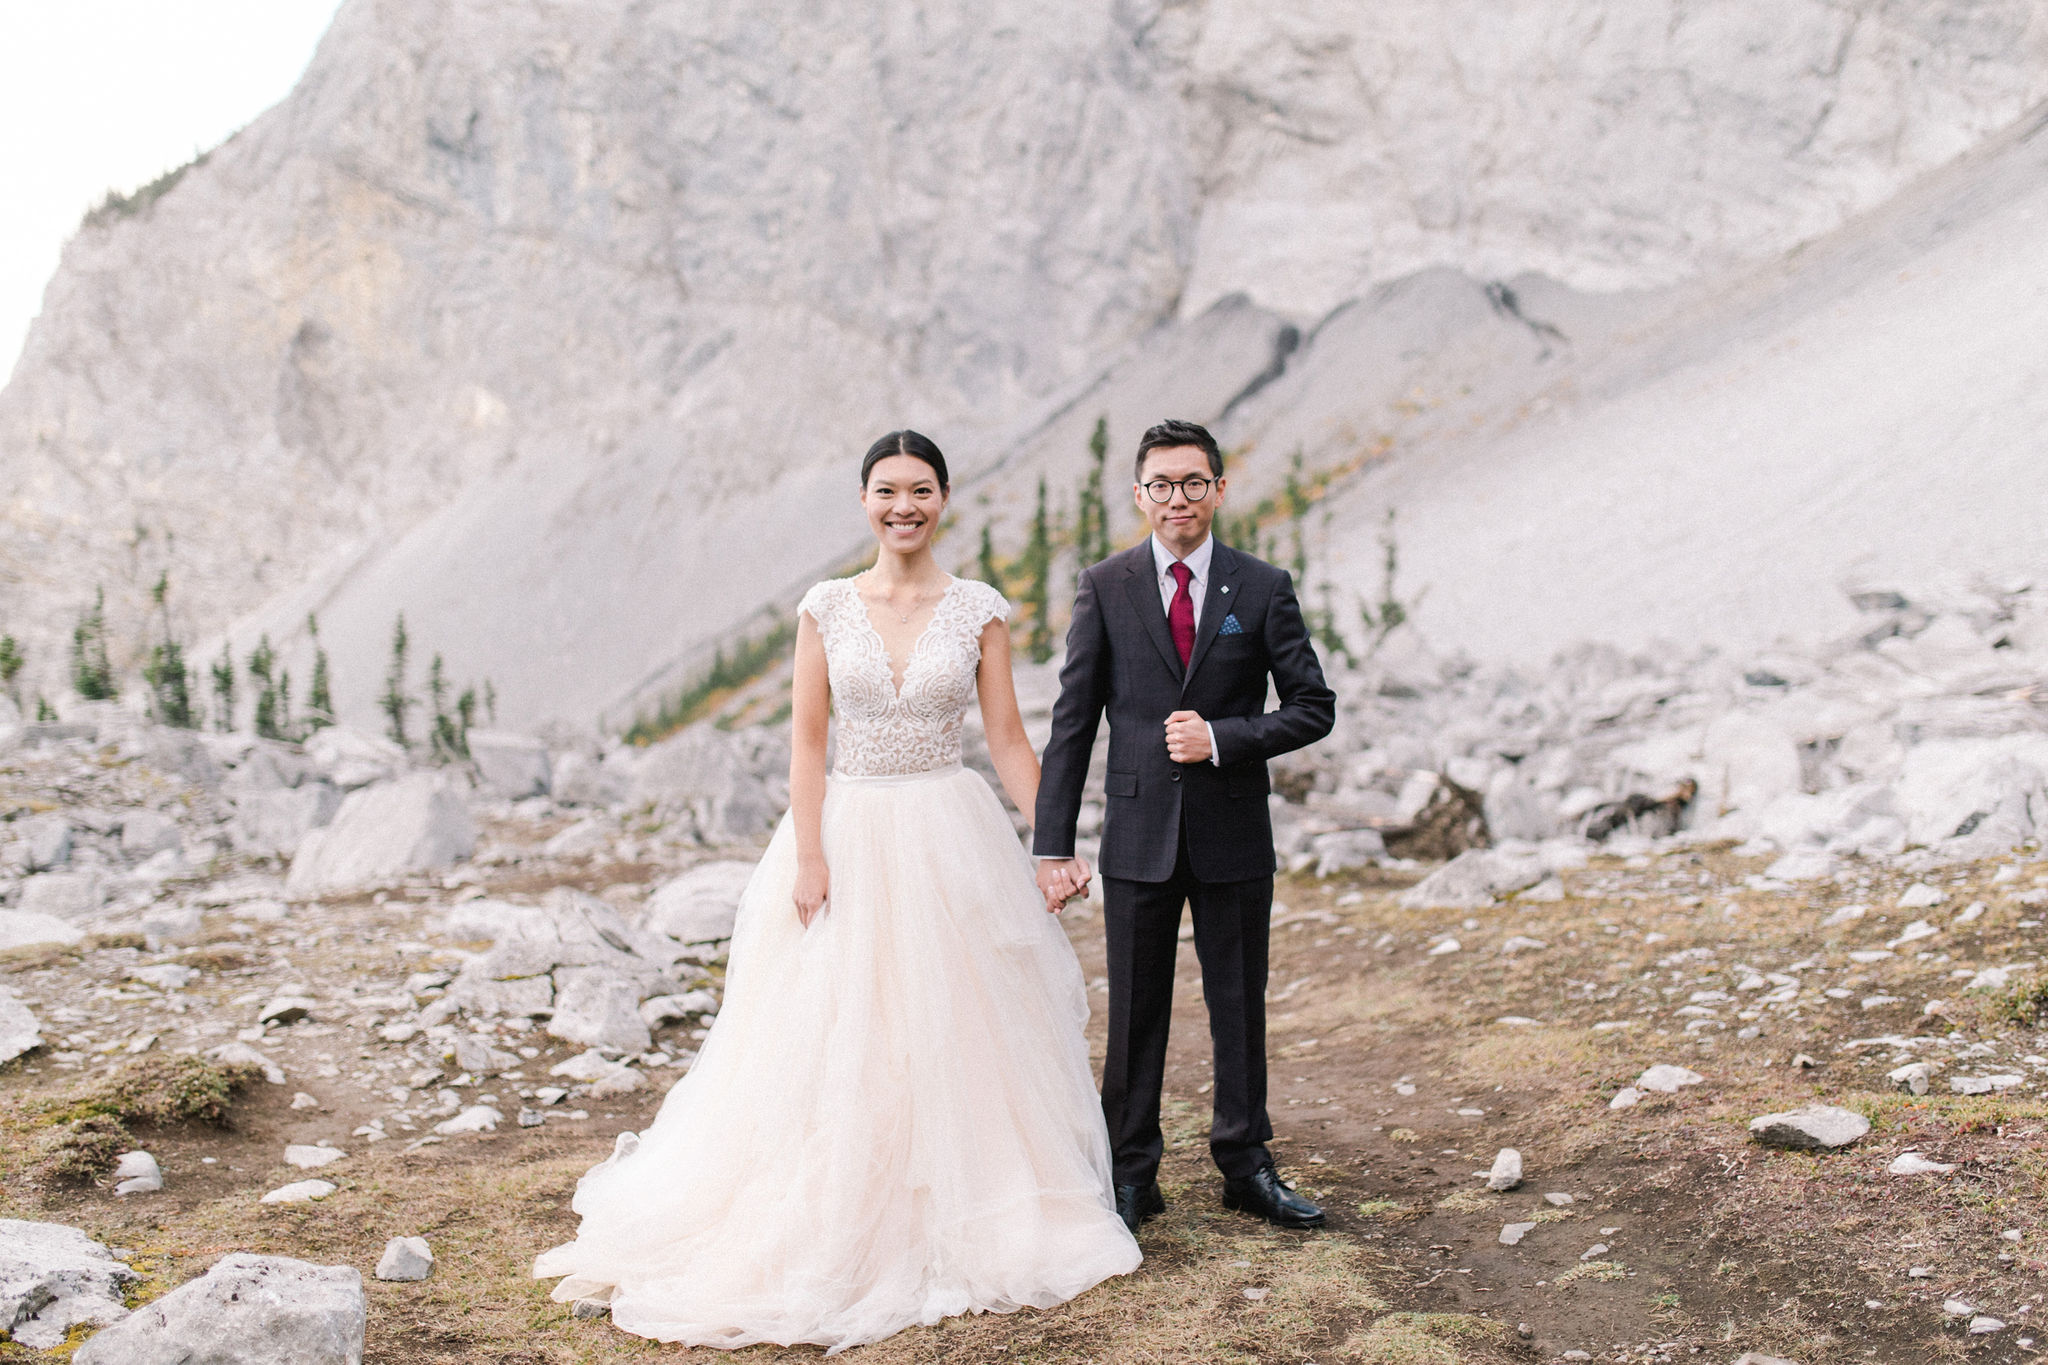 Banff Elopement | Calgary Wedding Planner | Banff Springs Hotel Wedding